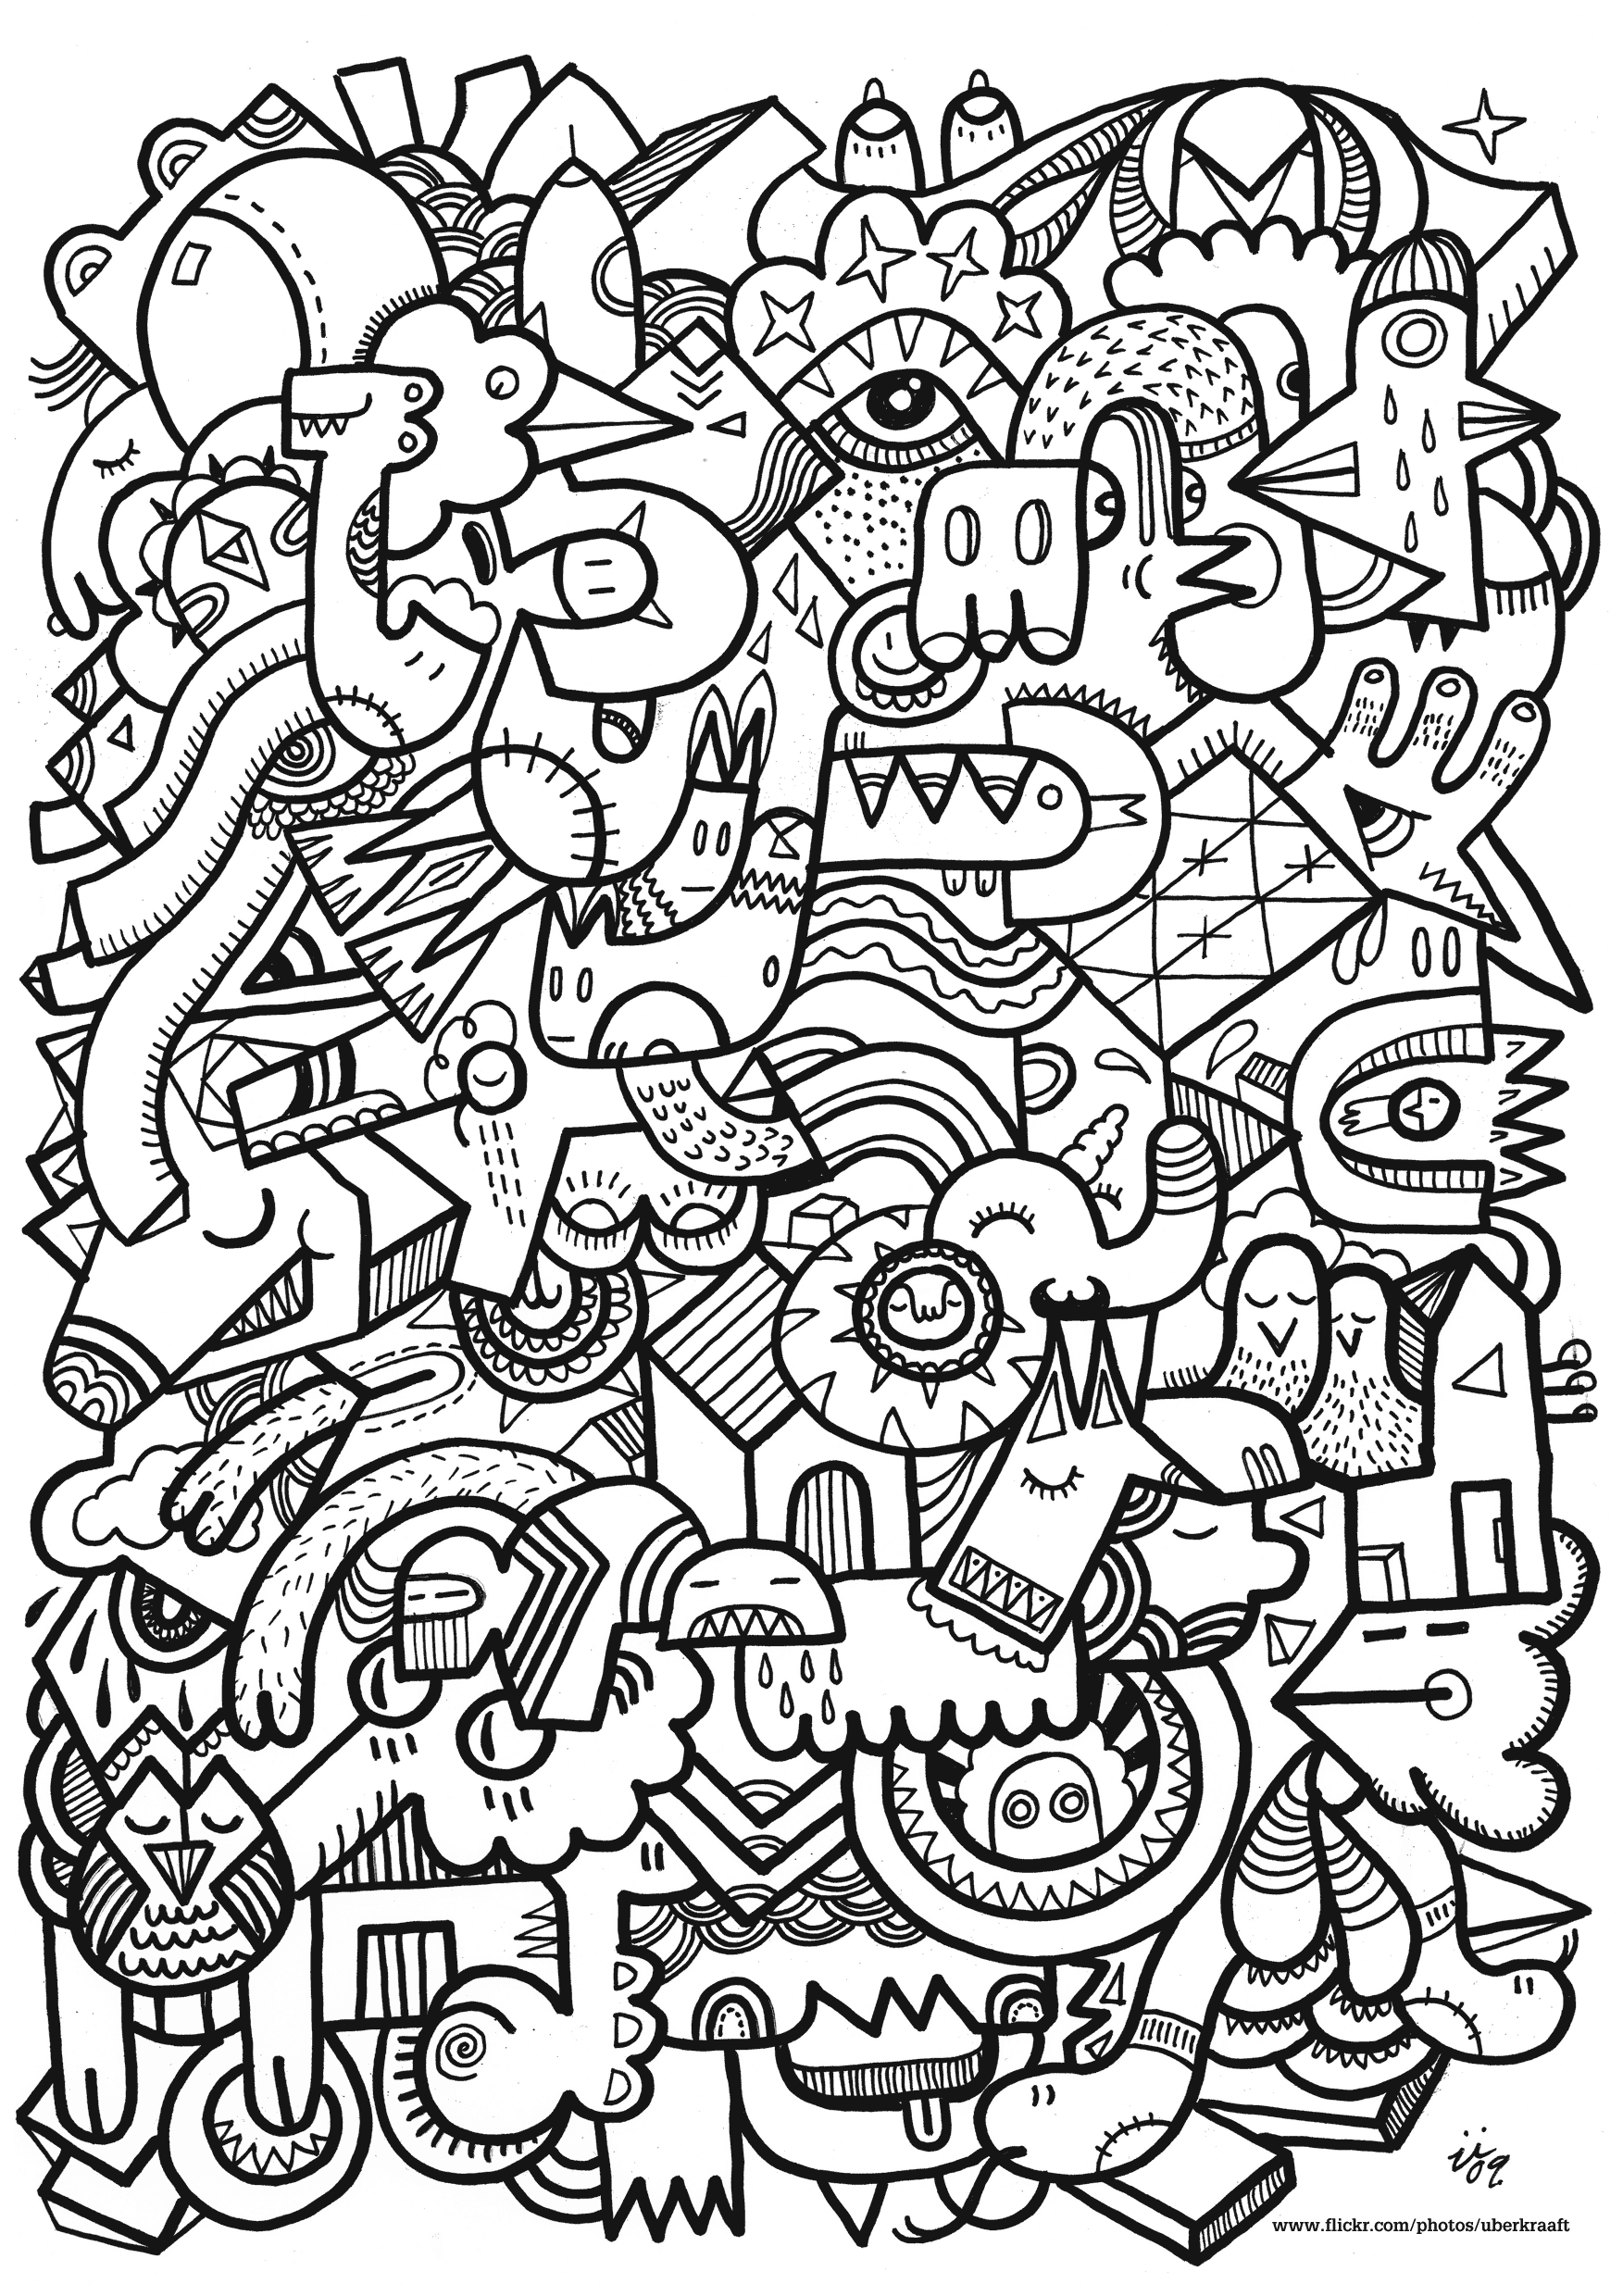 Coloring pages to print designs - Patterns Difficult Colouring Pages